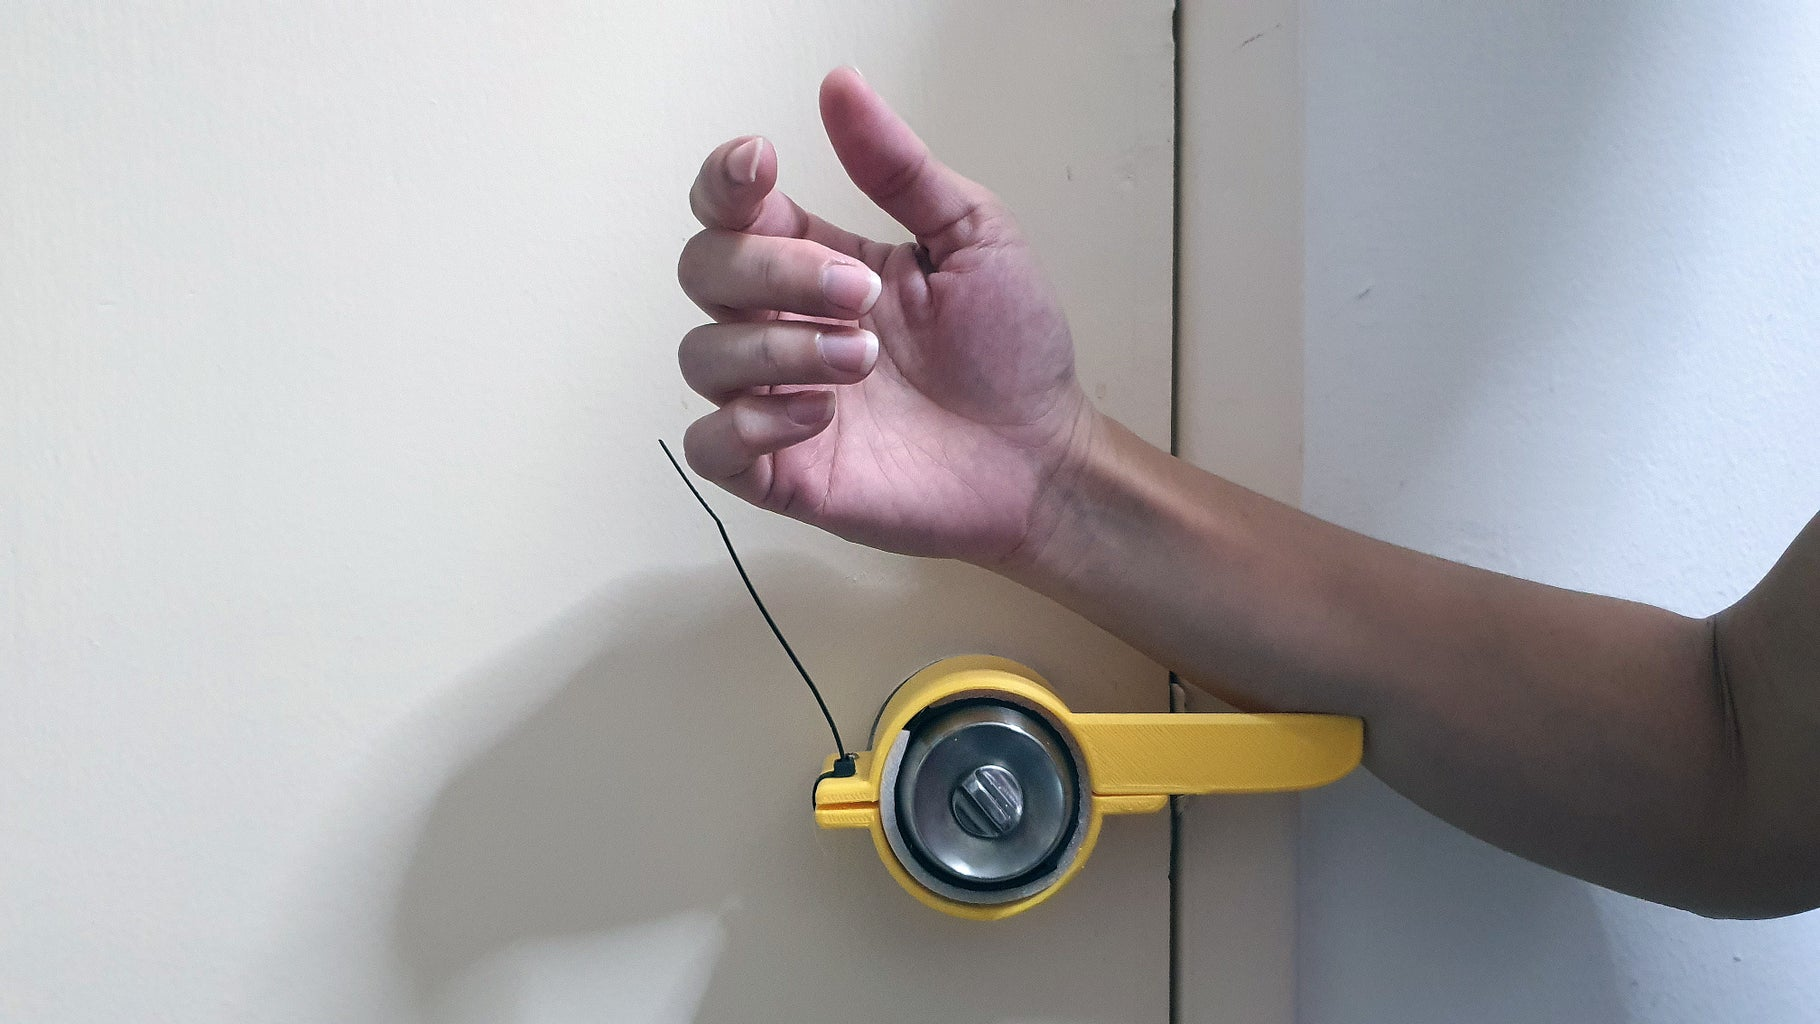 Test the Device by Using Your Arm